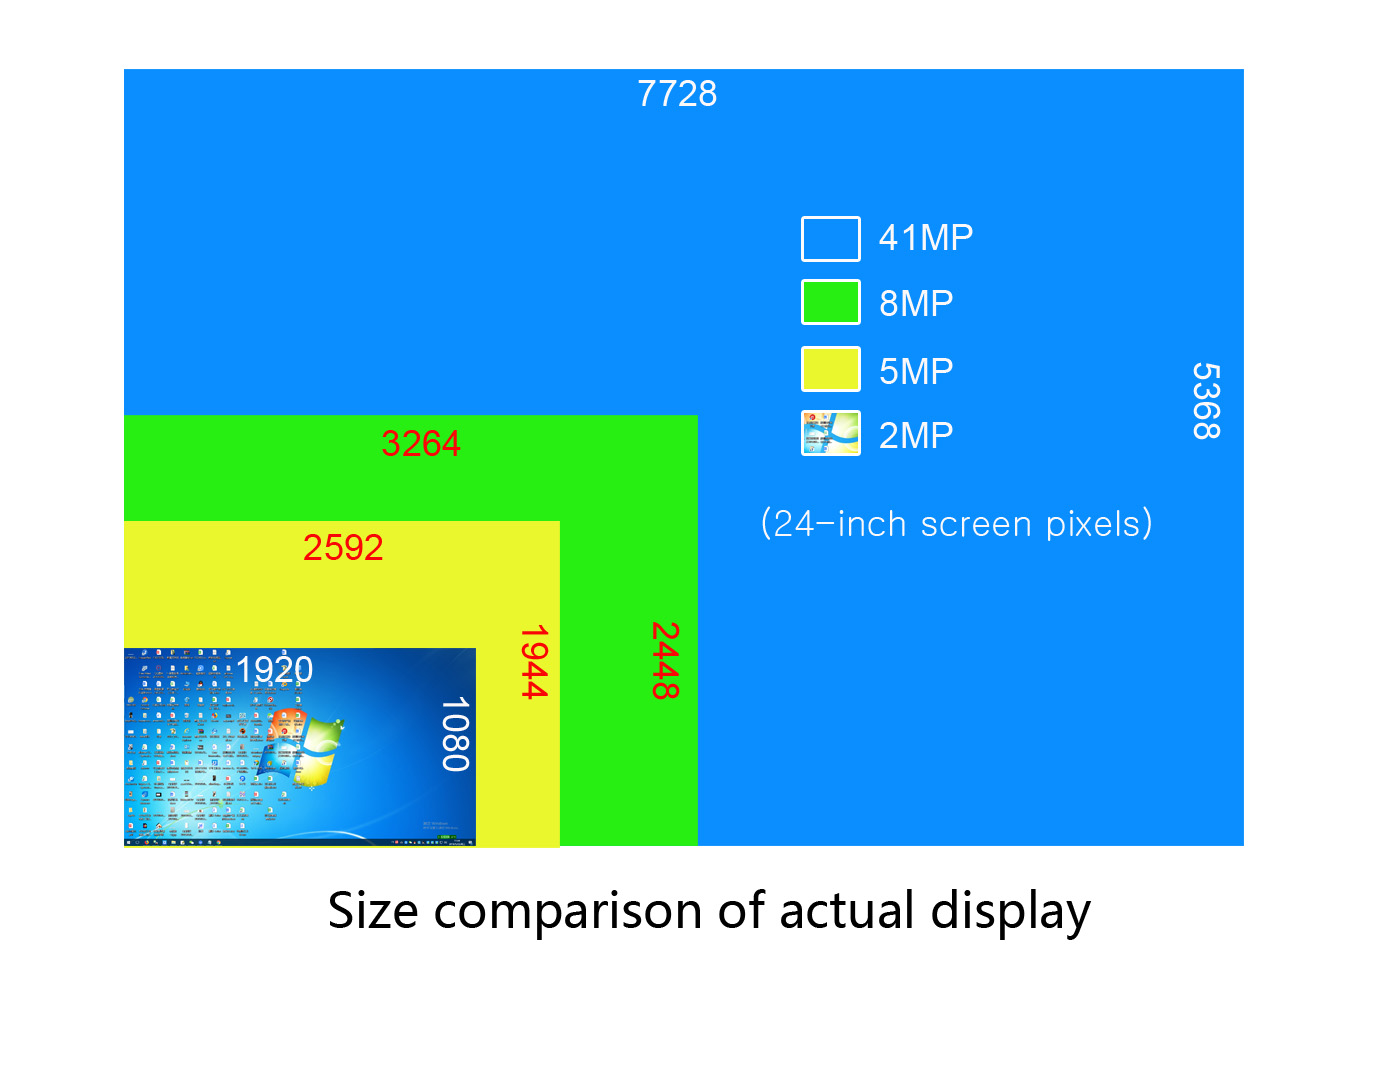 Actual display size for each pixel range